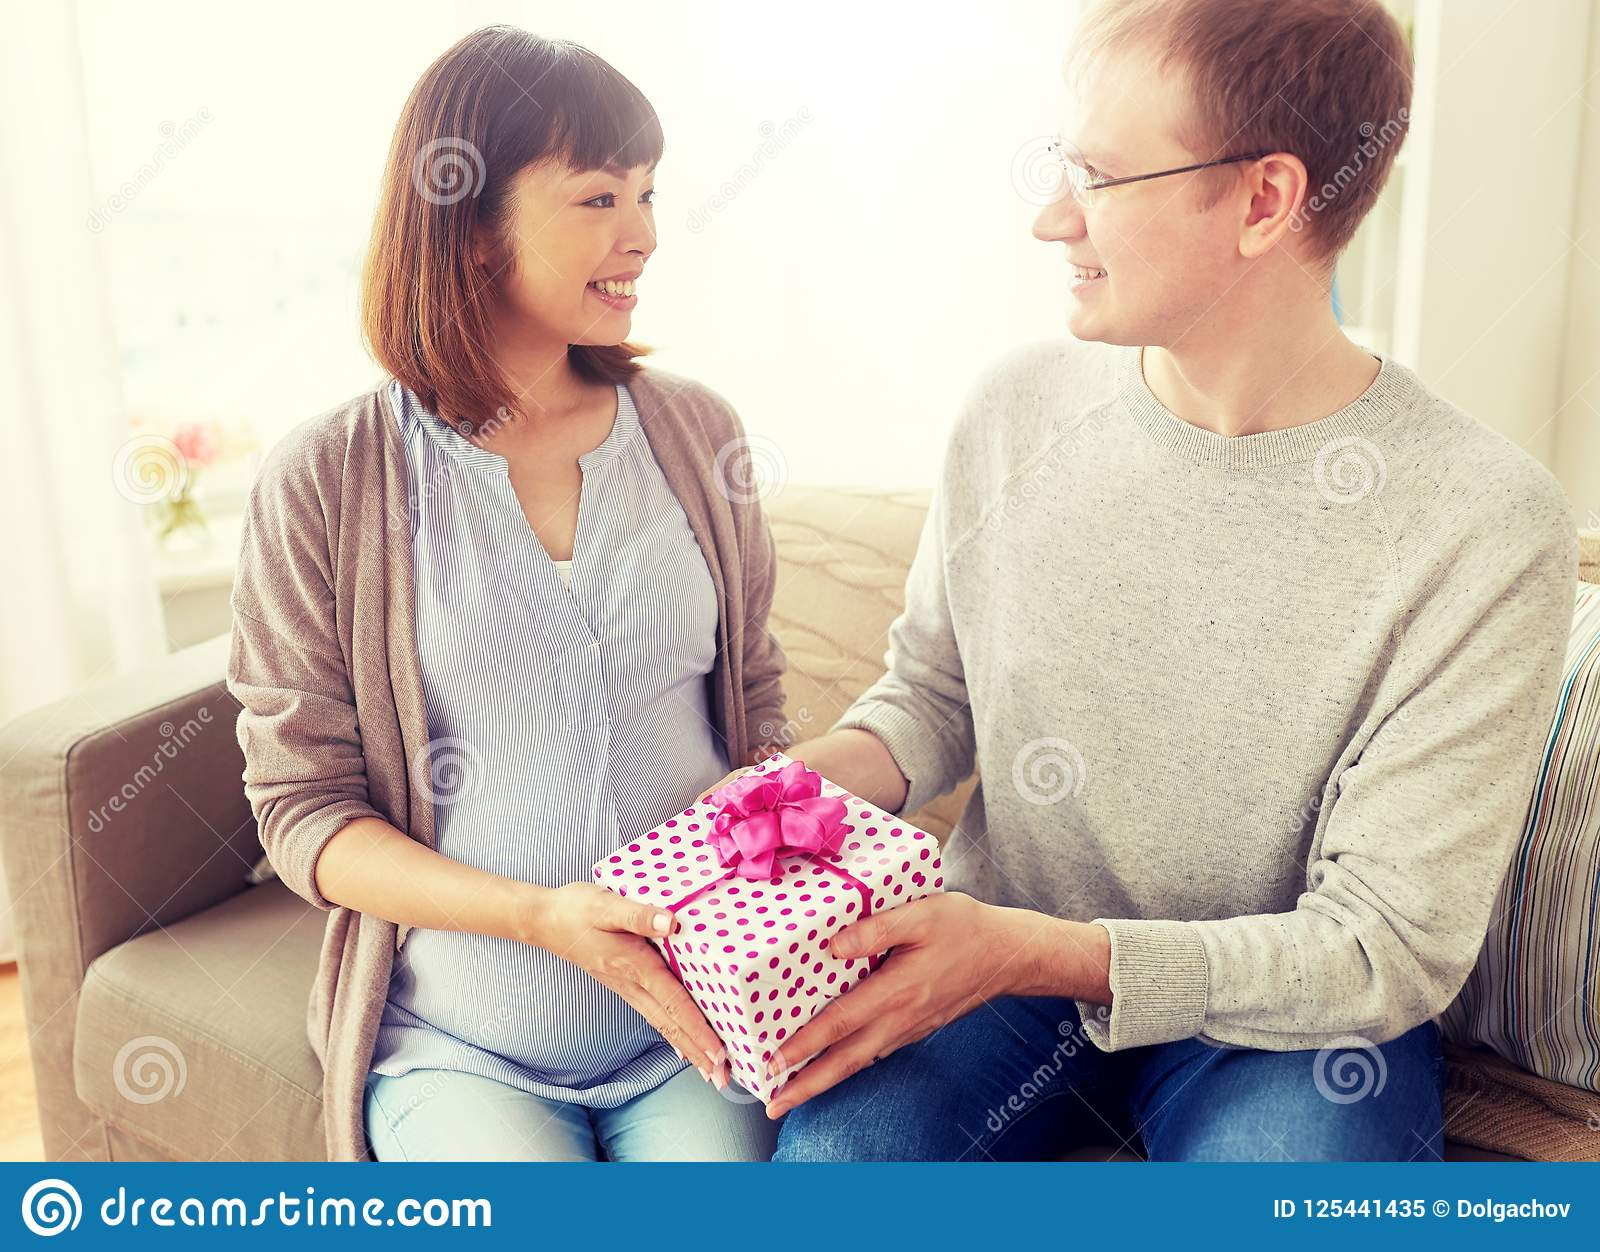 Husband Giving Birthday Present To Pregnant Wife Stock Image